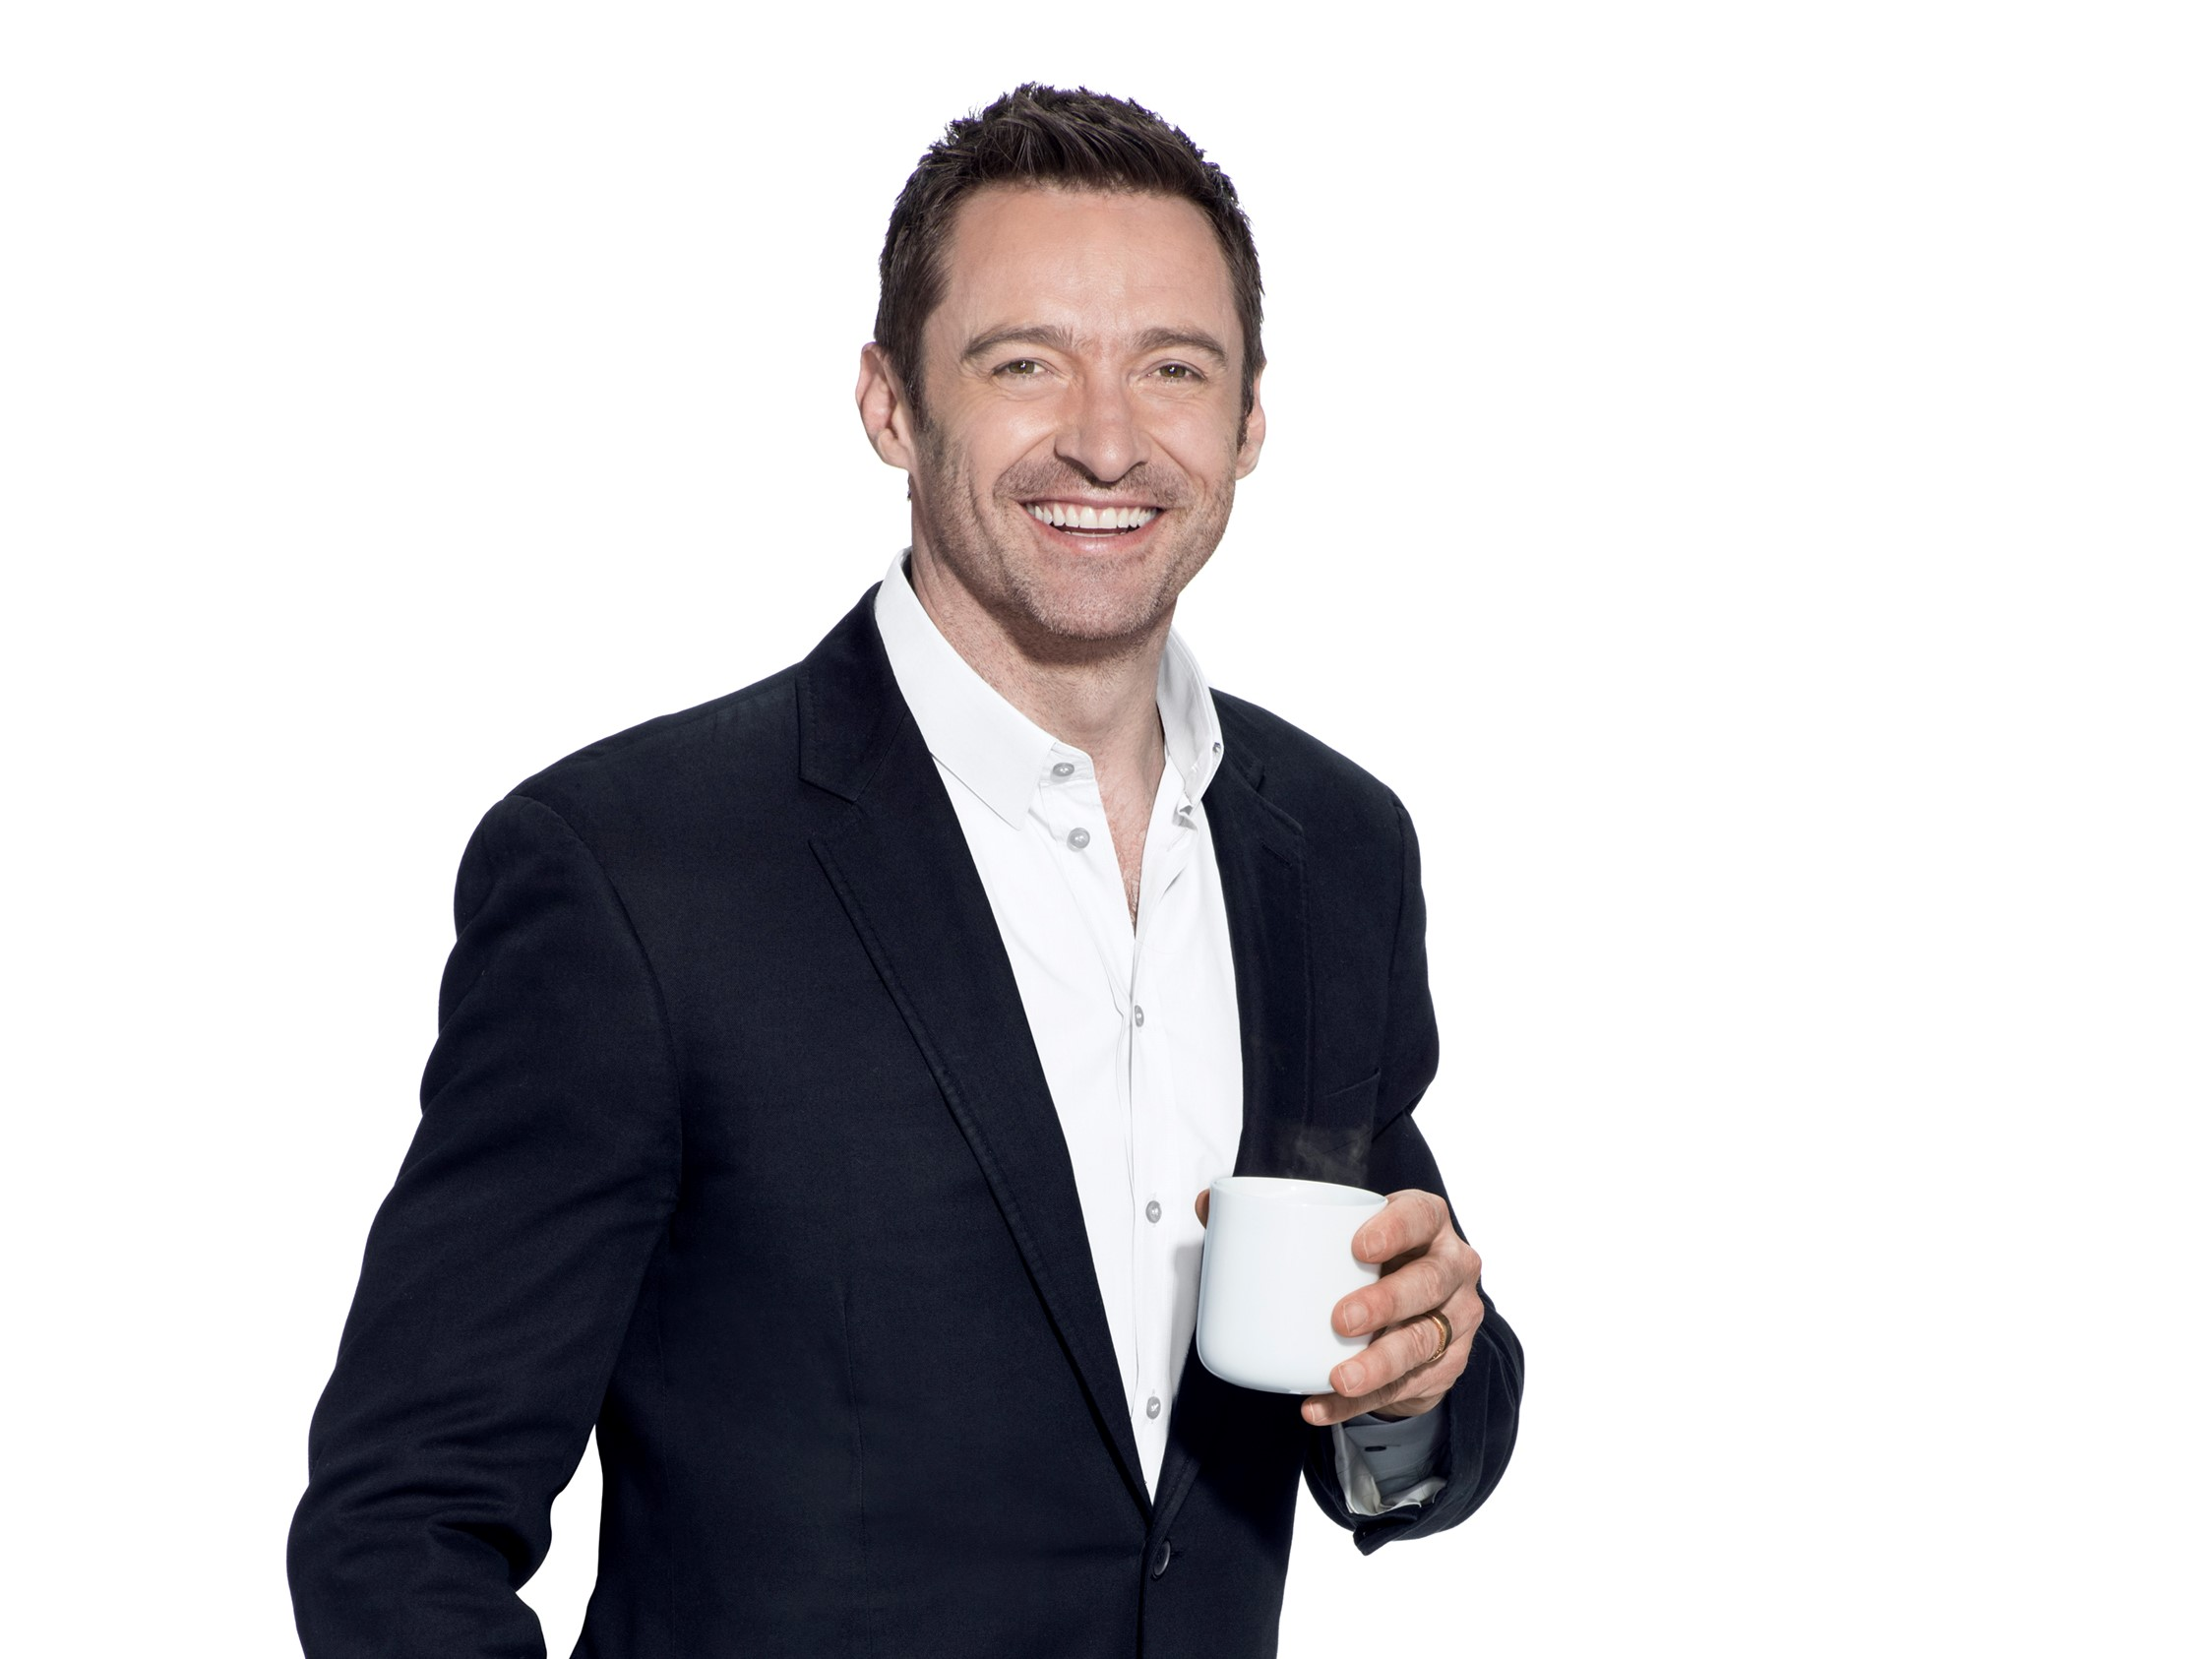 Keurig Green Mountain Inc Has Announced The Launch Of Laughing Man Coffee For Hot Brewing System Was Co Founded By Actor Hugh